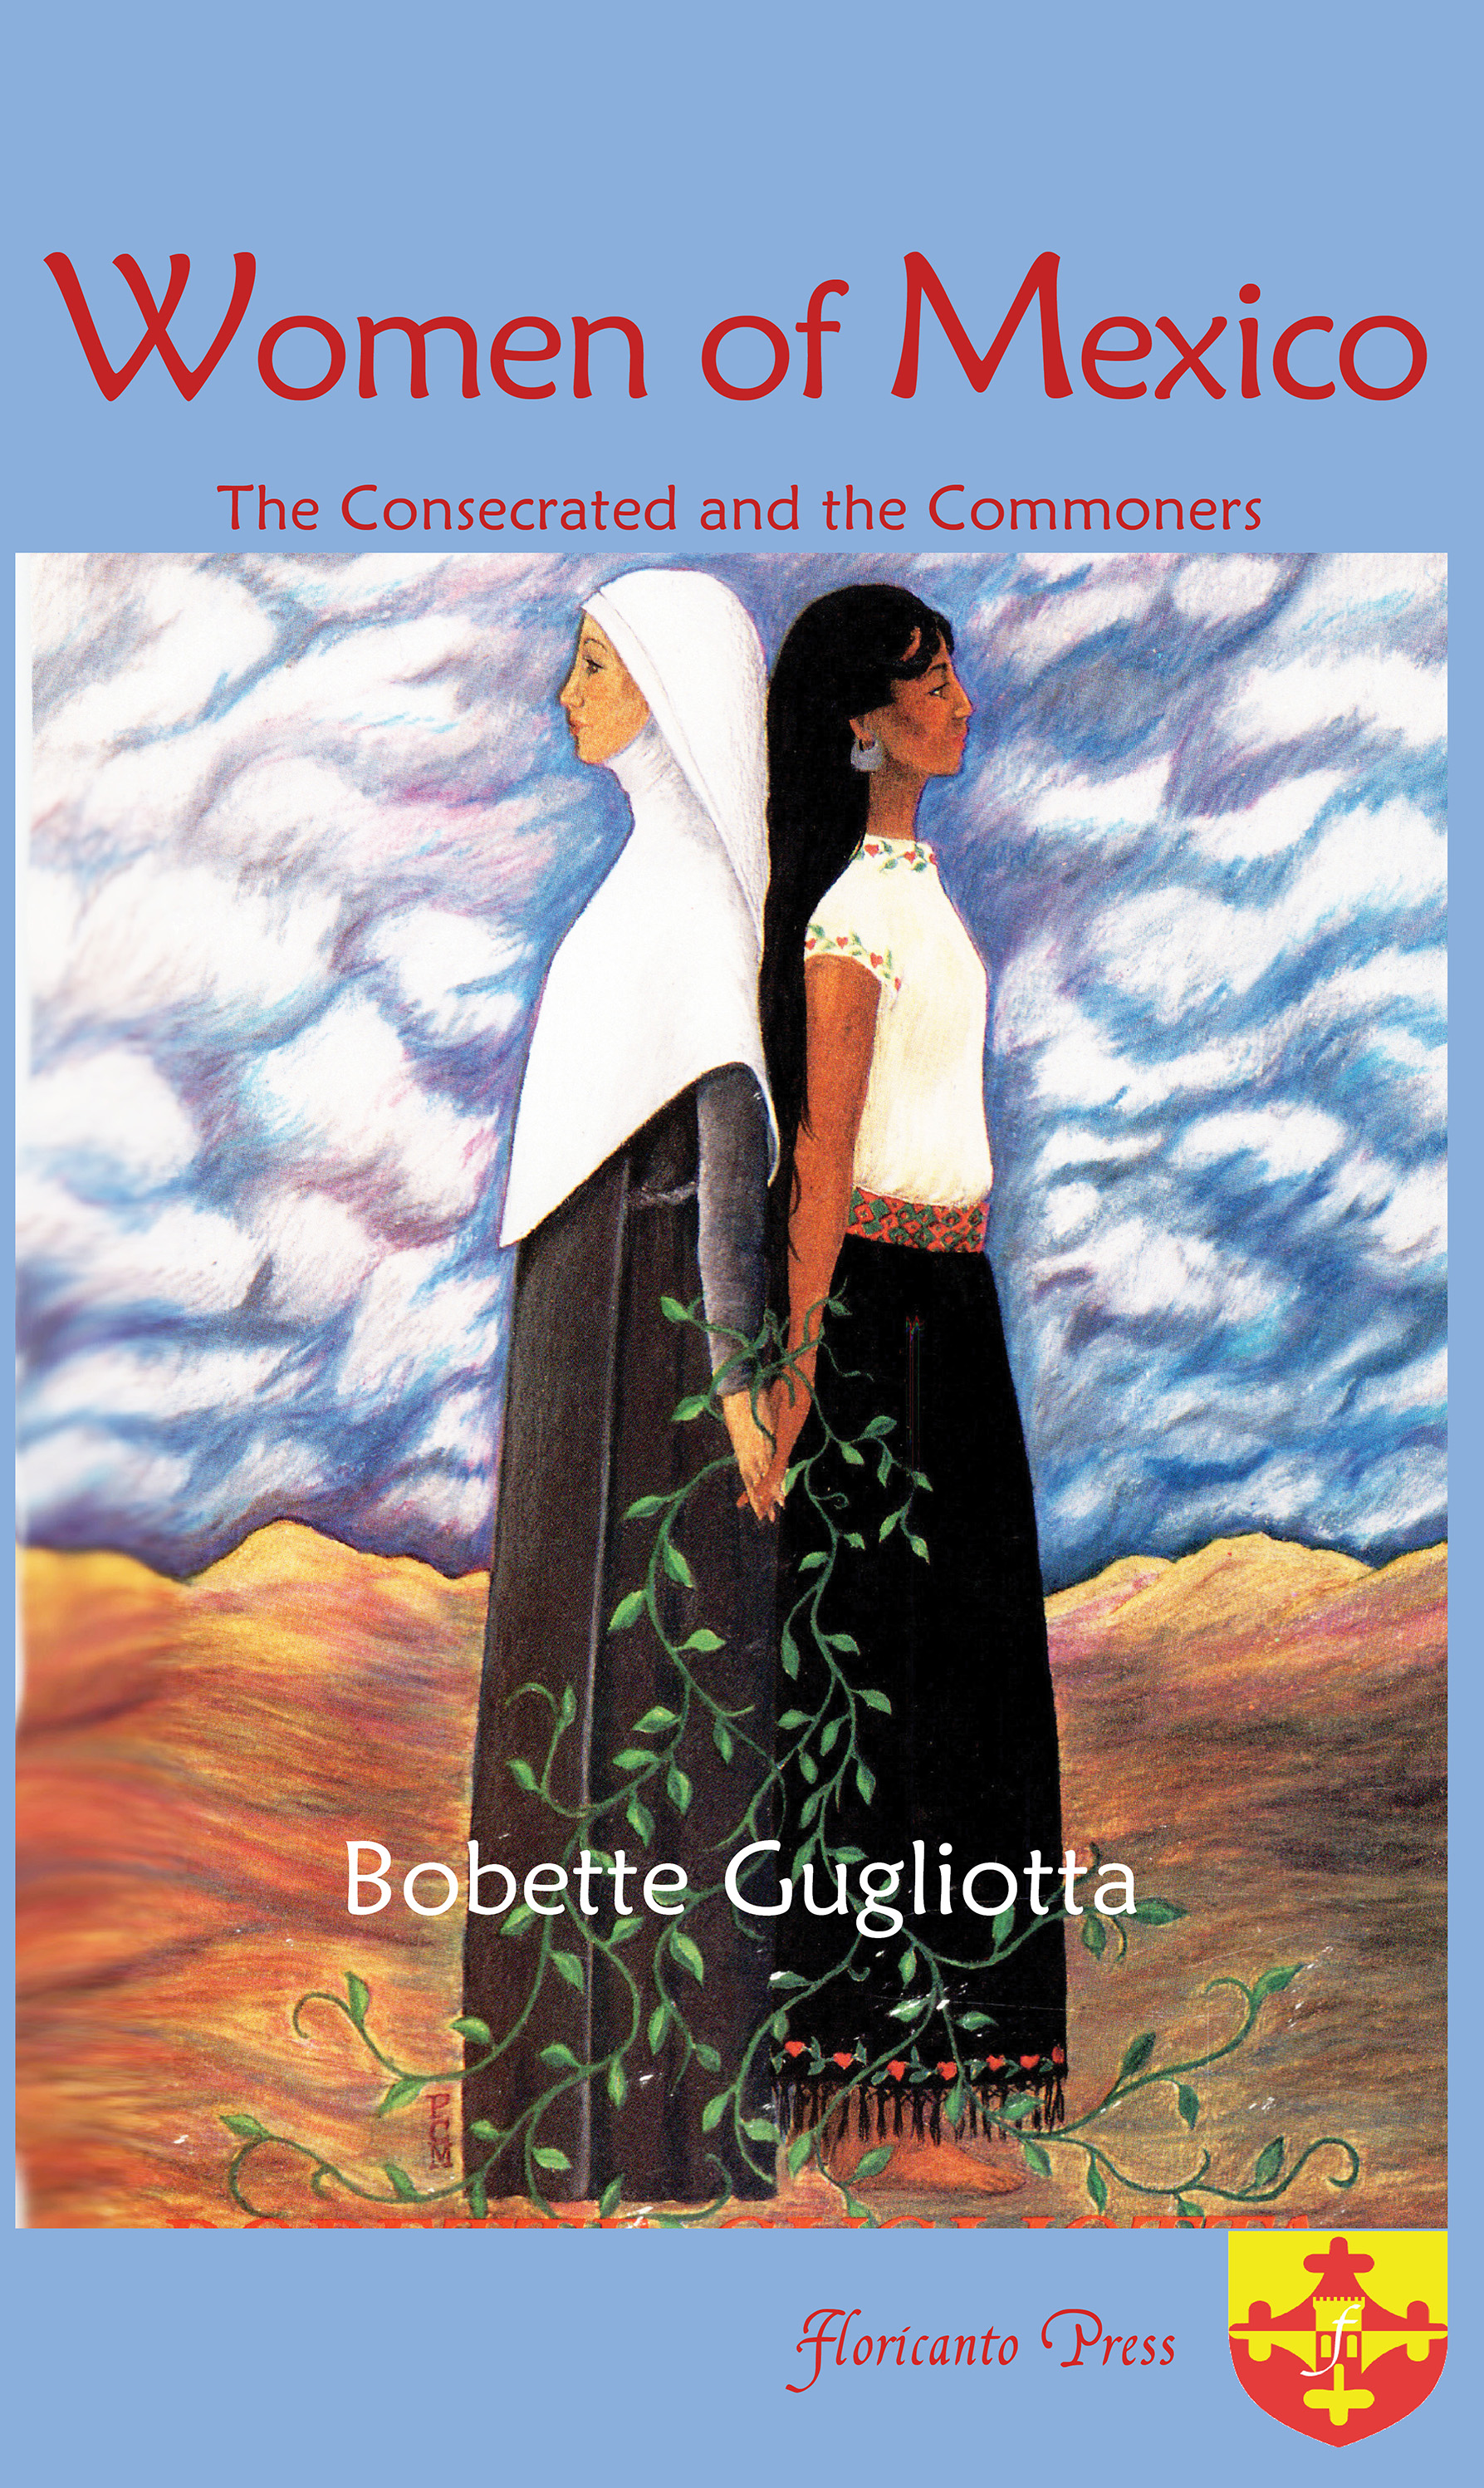 Women Of Mexico: The Consecrated And The Commoners, 1519-1900. By Bobette Gugliotta.